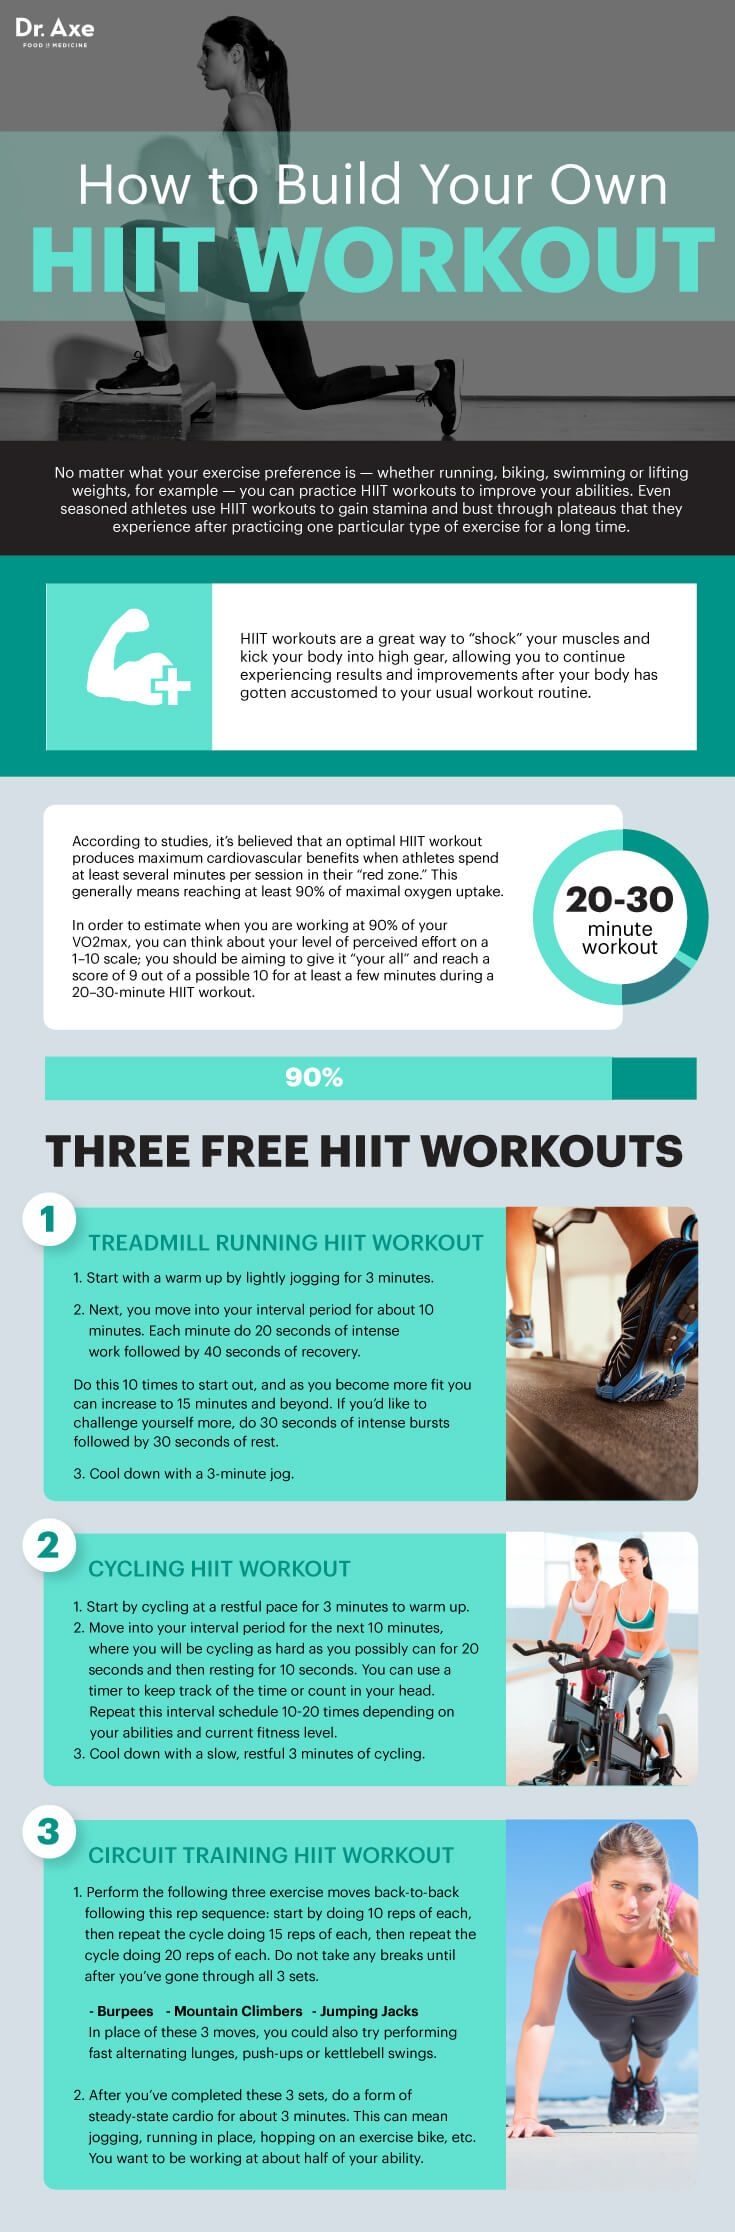 HIIT Workouts Beat Conventional Cardio - Dr. Axe | Bonus Advanced HIIT Workout: Circuit Training HIIT Style! Go through each move described below for an intense 20 seconds, moving very quickly through as many reps as you can perform in 20 seconds, followed by 10 seconds of rest. Then move on to the next move following the same timing. Once you've completed each move below, you are done with one intense interval. Push-ups Bodyweight Rows Squats Jumping Rope Burpees Jumping Jacks Running i